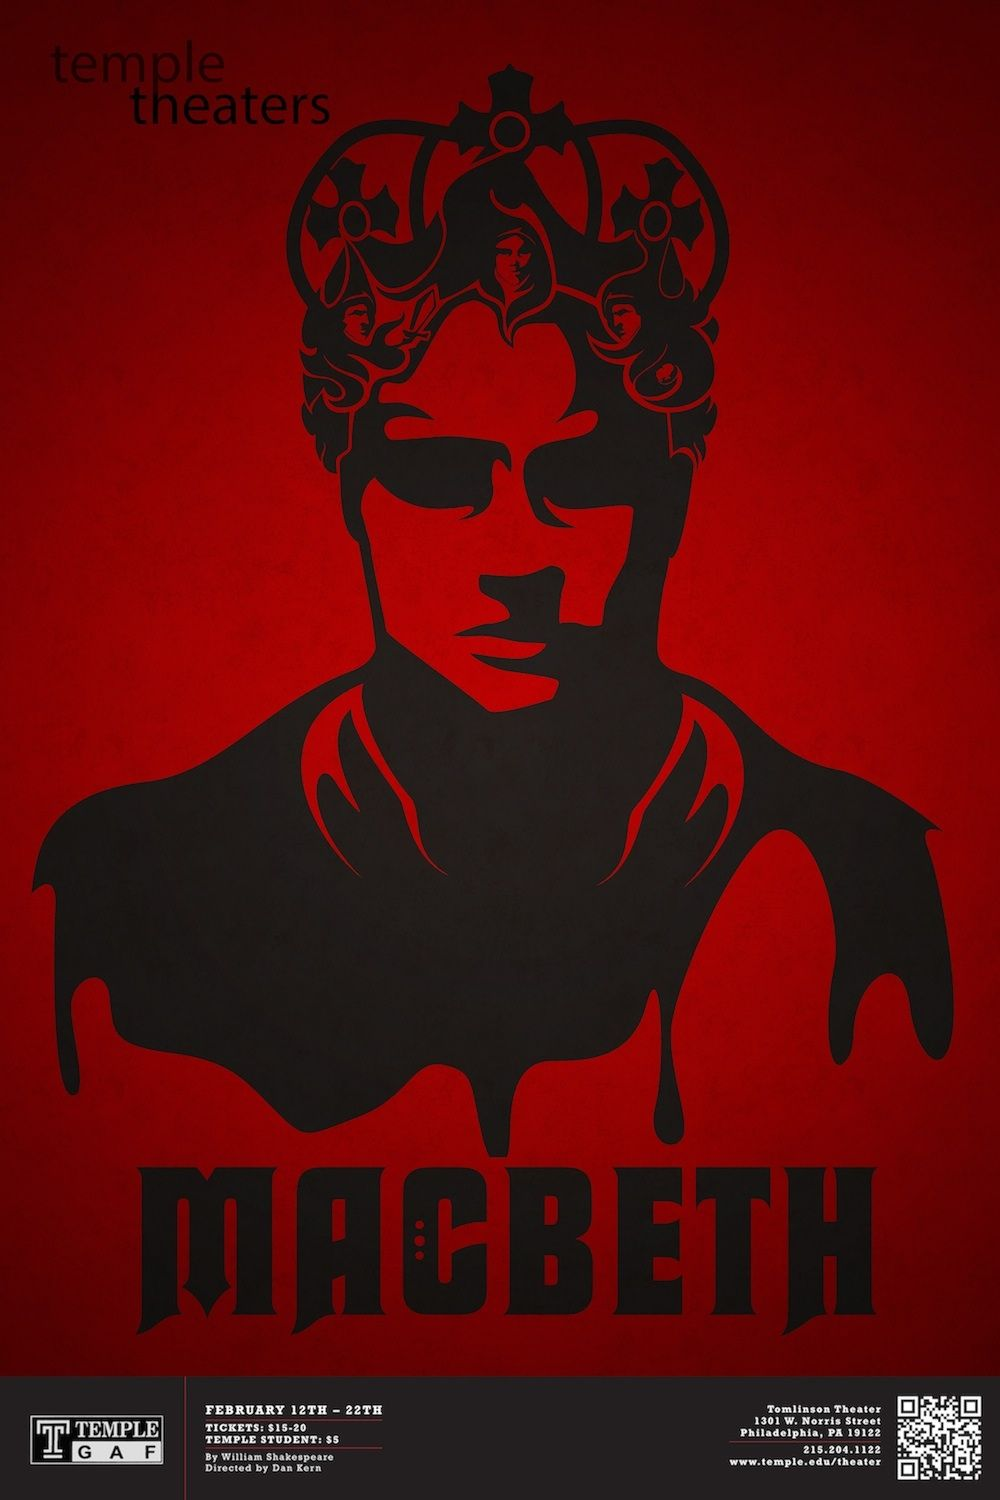 Macbeth Book Cover Ideas : Pin by elia on notonlymacbeth pinterest book covers